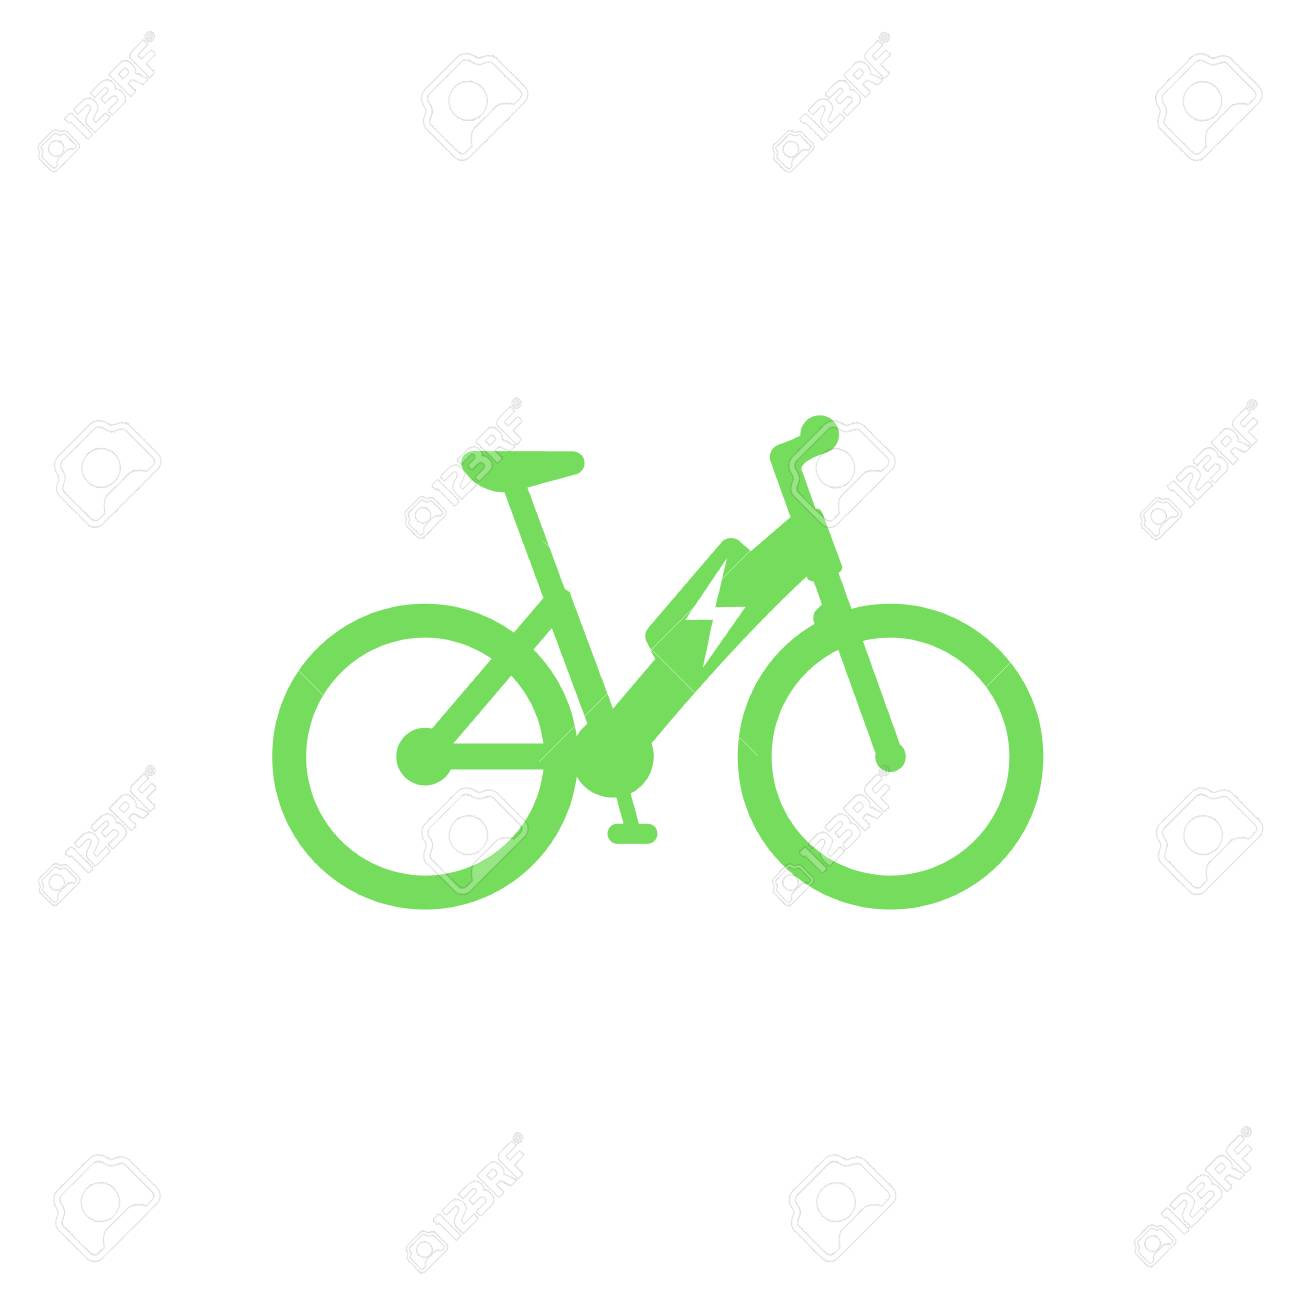 Electric bicycle icon, e-bike isolated on white - 89552925